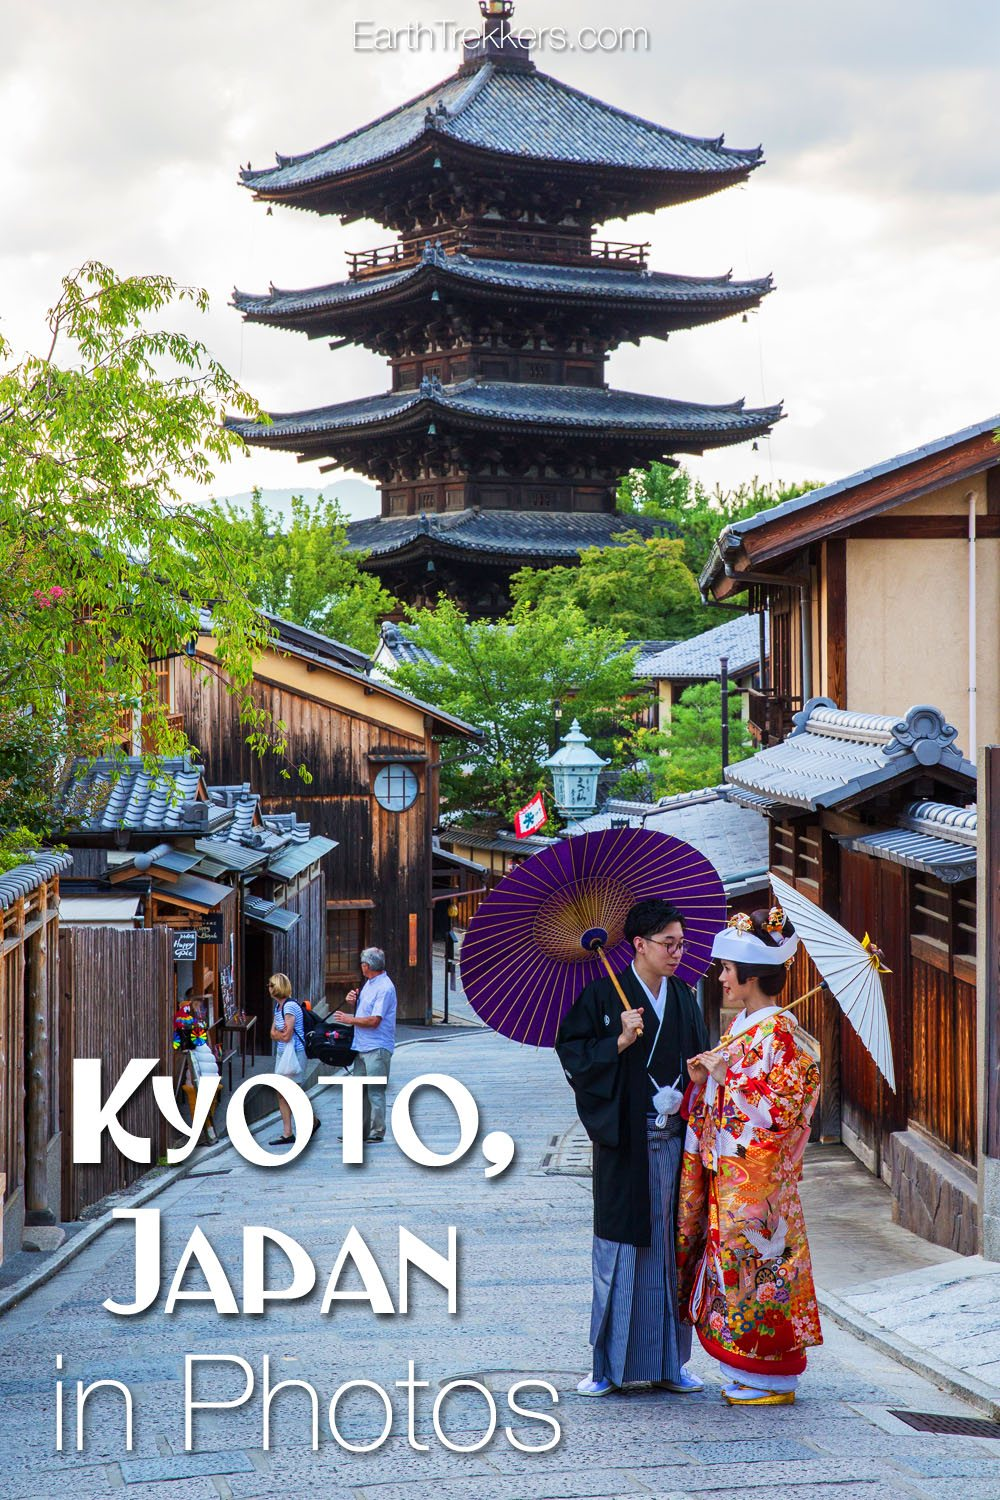 Kyoto Japan in Photos